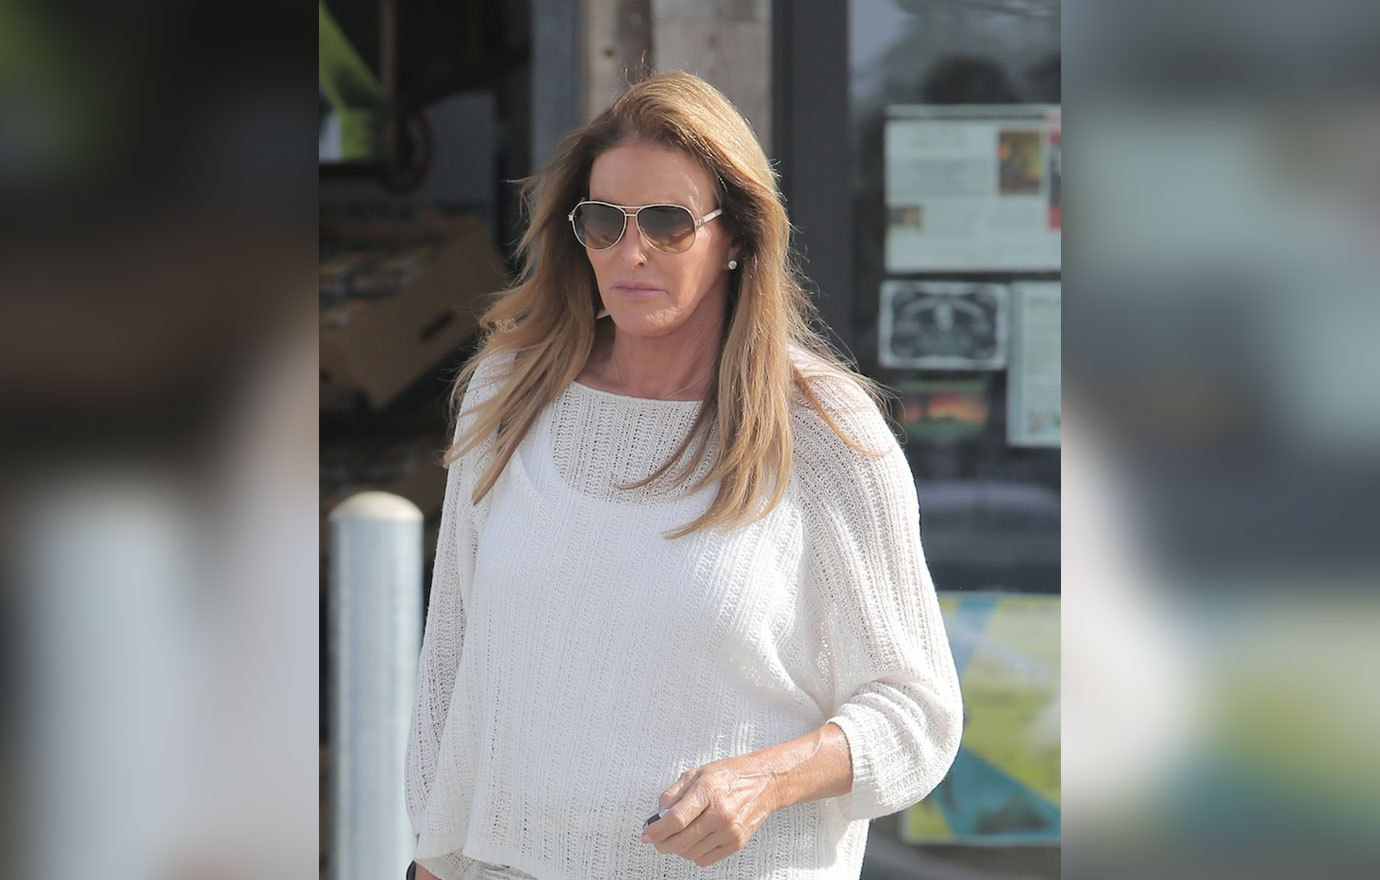 October 7, 2016: Caitlyn Jenner is spotted food shopping while out and about in Malibu, California. Mandatory Credit: Borisio/INFphoto.com Ref: infusla-269 Editorial Rights Managed Image - Please contact www.INSTARimages.com for licensing fee email sales@instarimages.com - Image or video may not be published in any way that is or might be deemed defamatory, libelous, pornographic, or obscene / Please consult our sales department for any clarification or question you may have - http://www.INSTARimages.com reserves the right to pursue unauthorized users of this image or video. If you are in violation of our intellectual property you may be liable for actual damages, loss of income, and profits you derive from the use of this image or video, and where appropriate, the cost of collection and/or statutory damage.